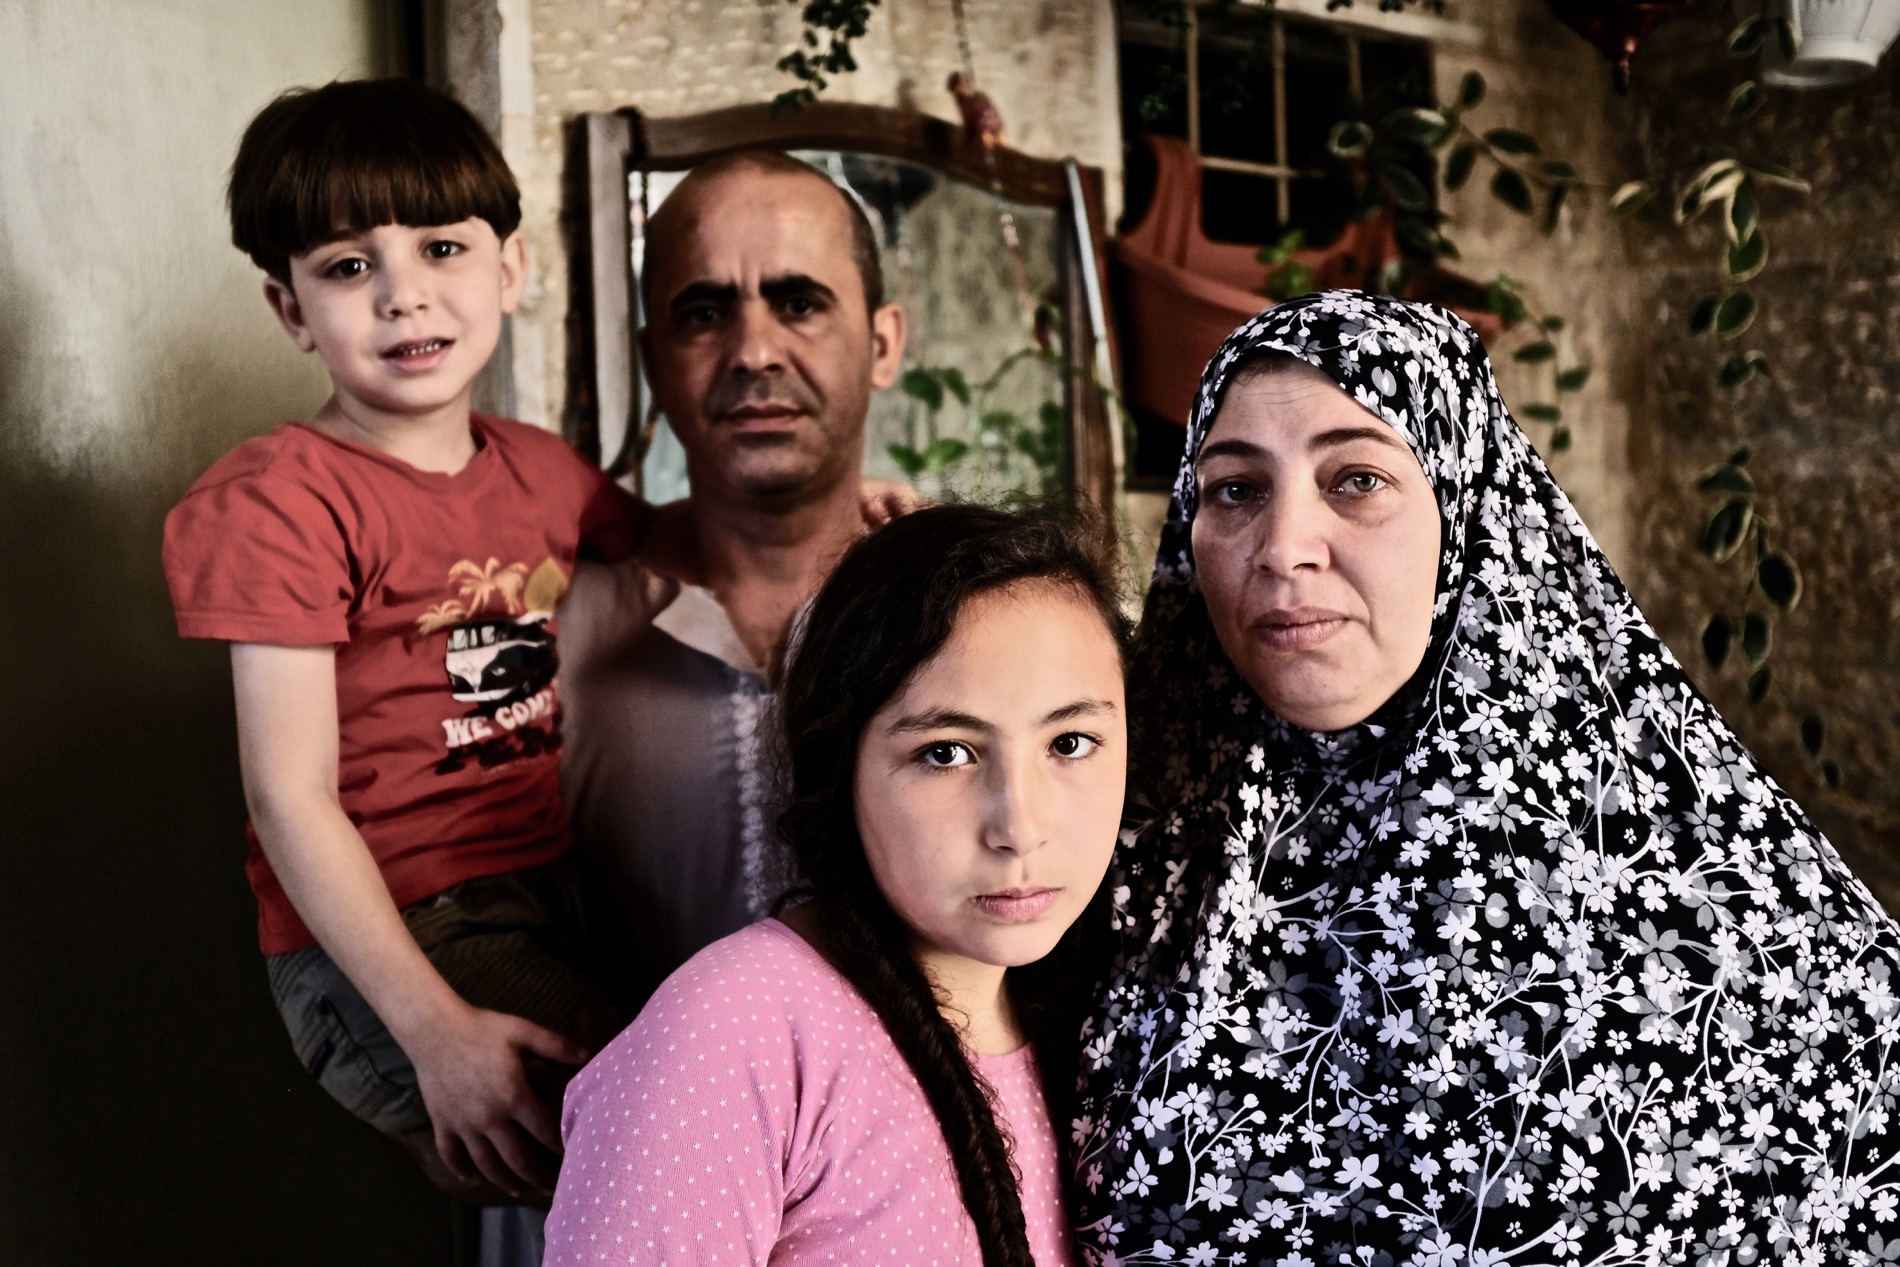 Stuck between a rock and a hard place - Housing in East Jerusalem